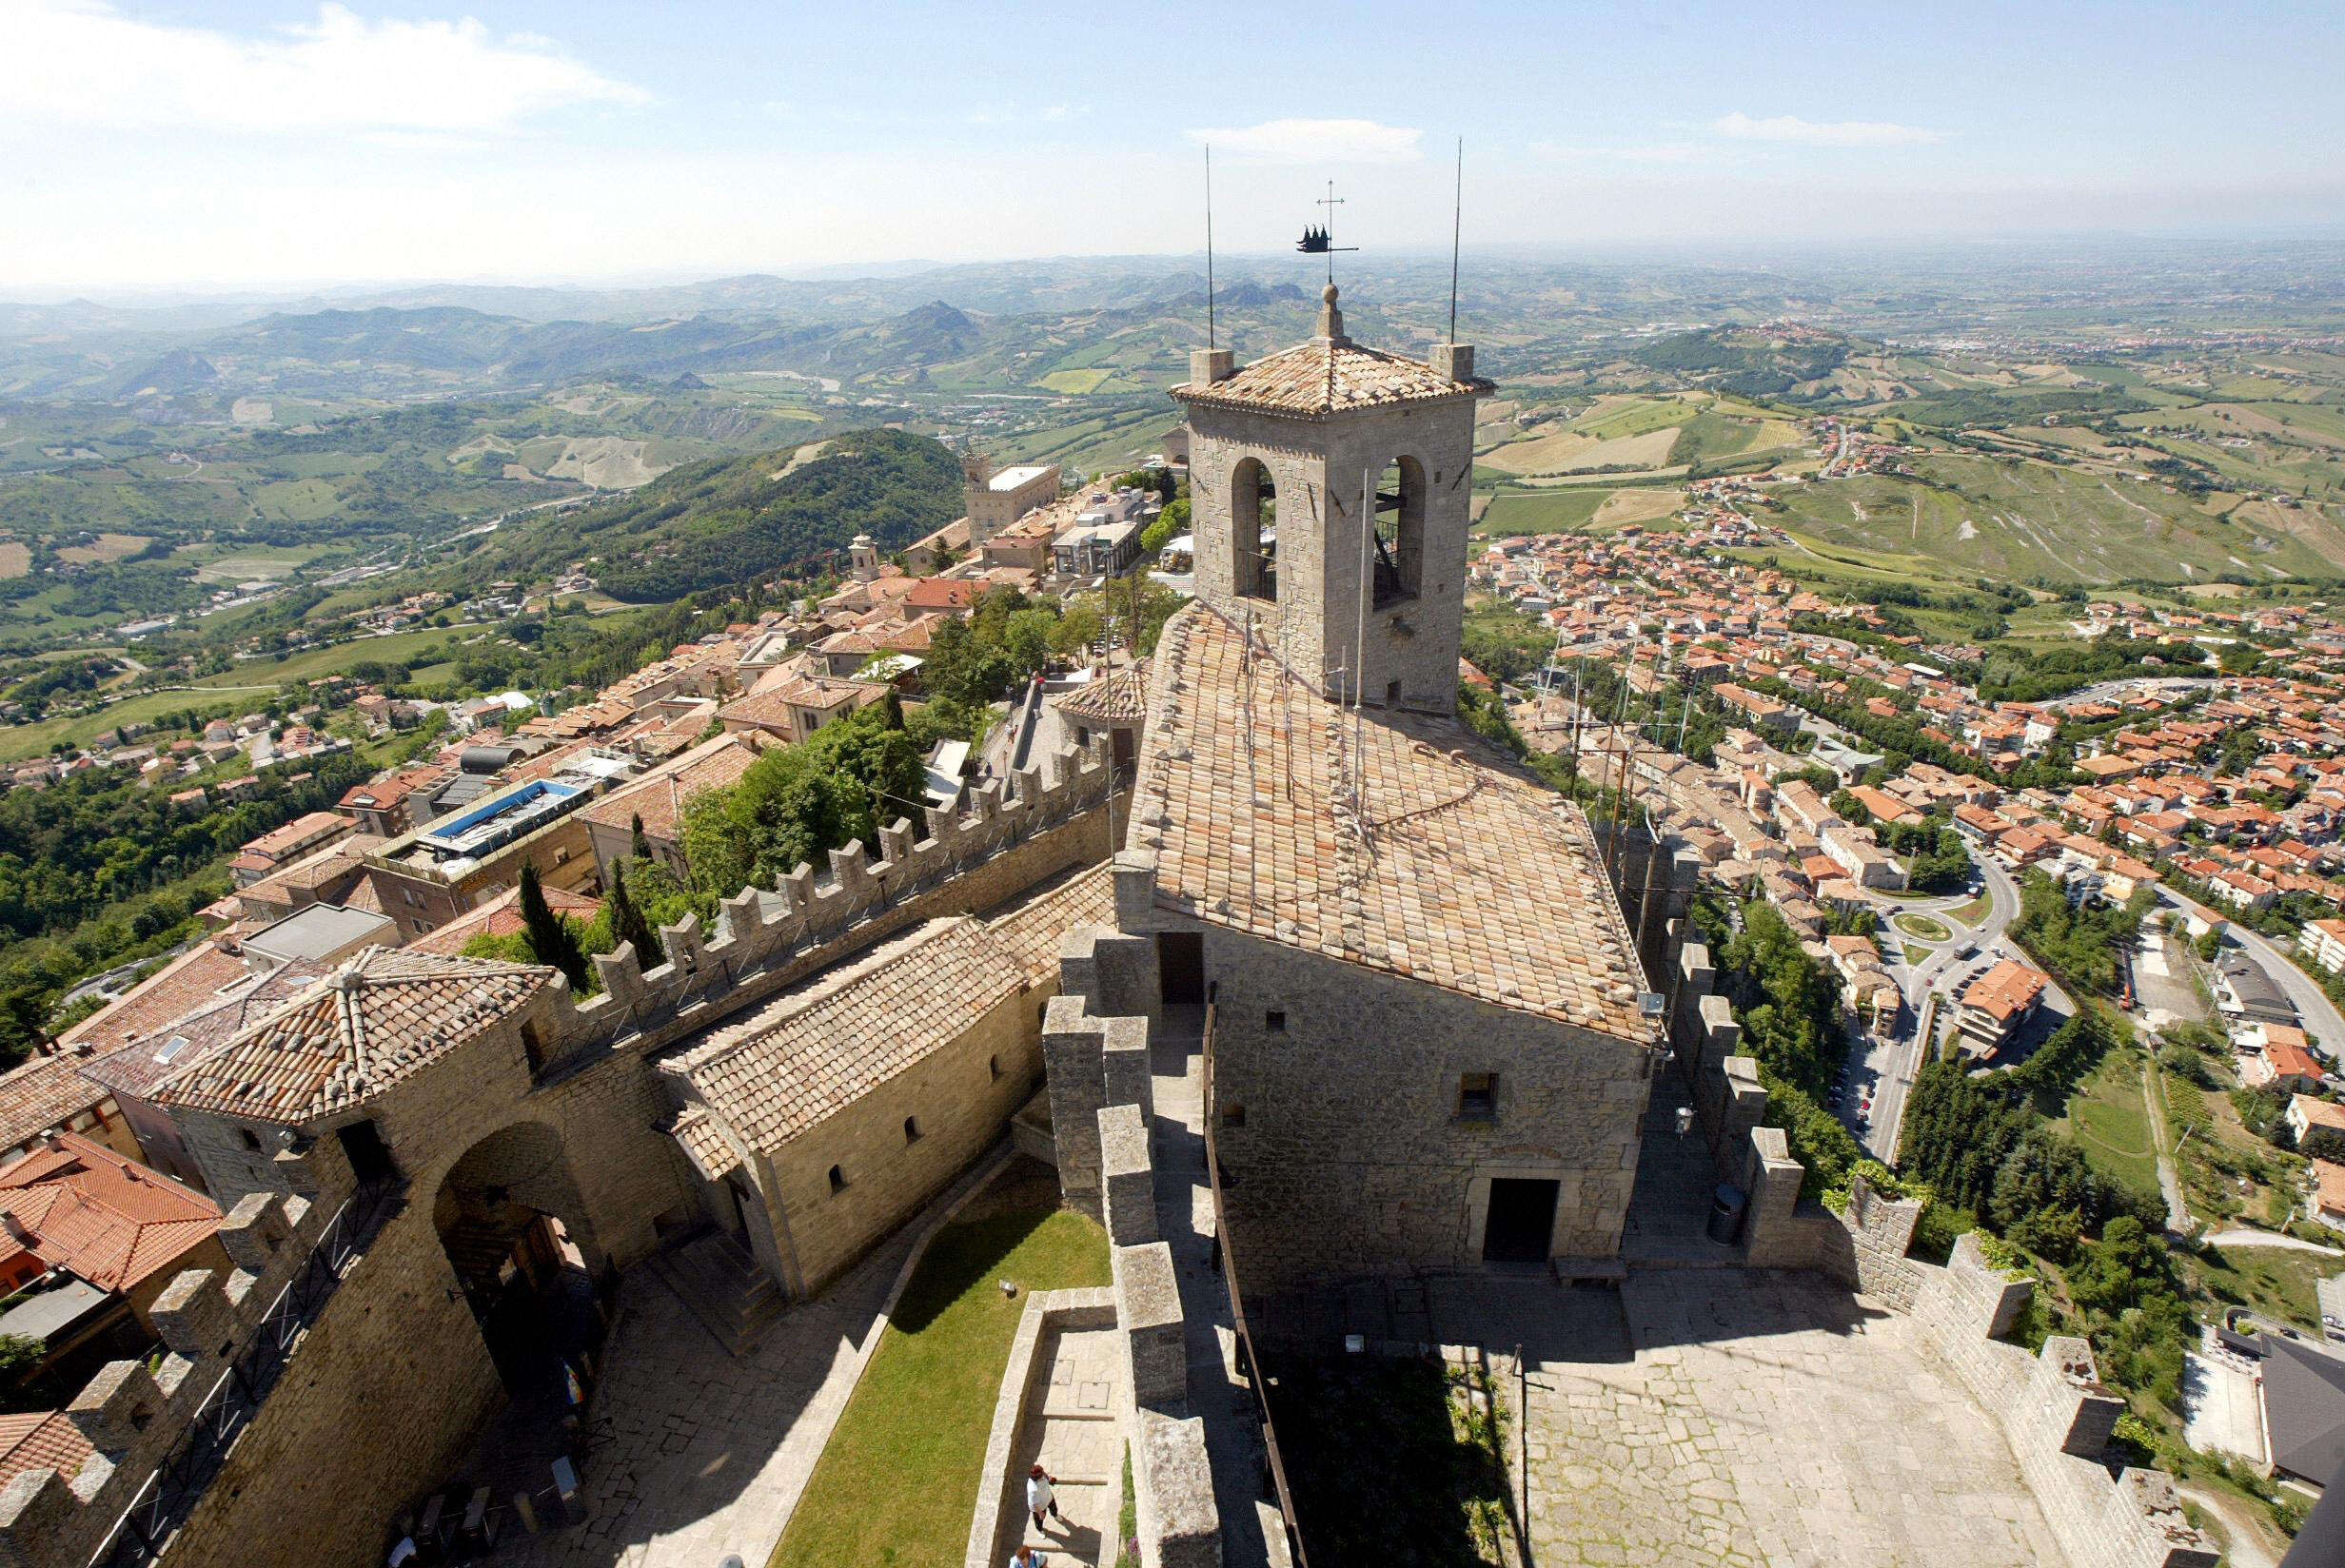 La Guaita guarding over the walled enclosure of historic San Marino